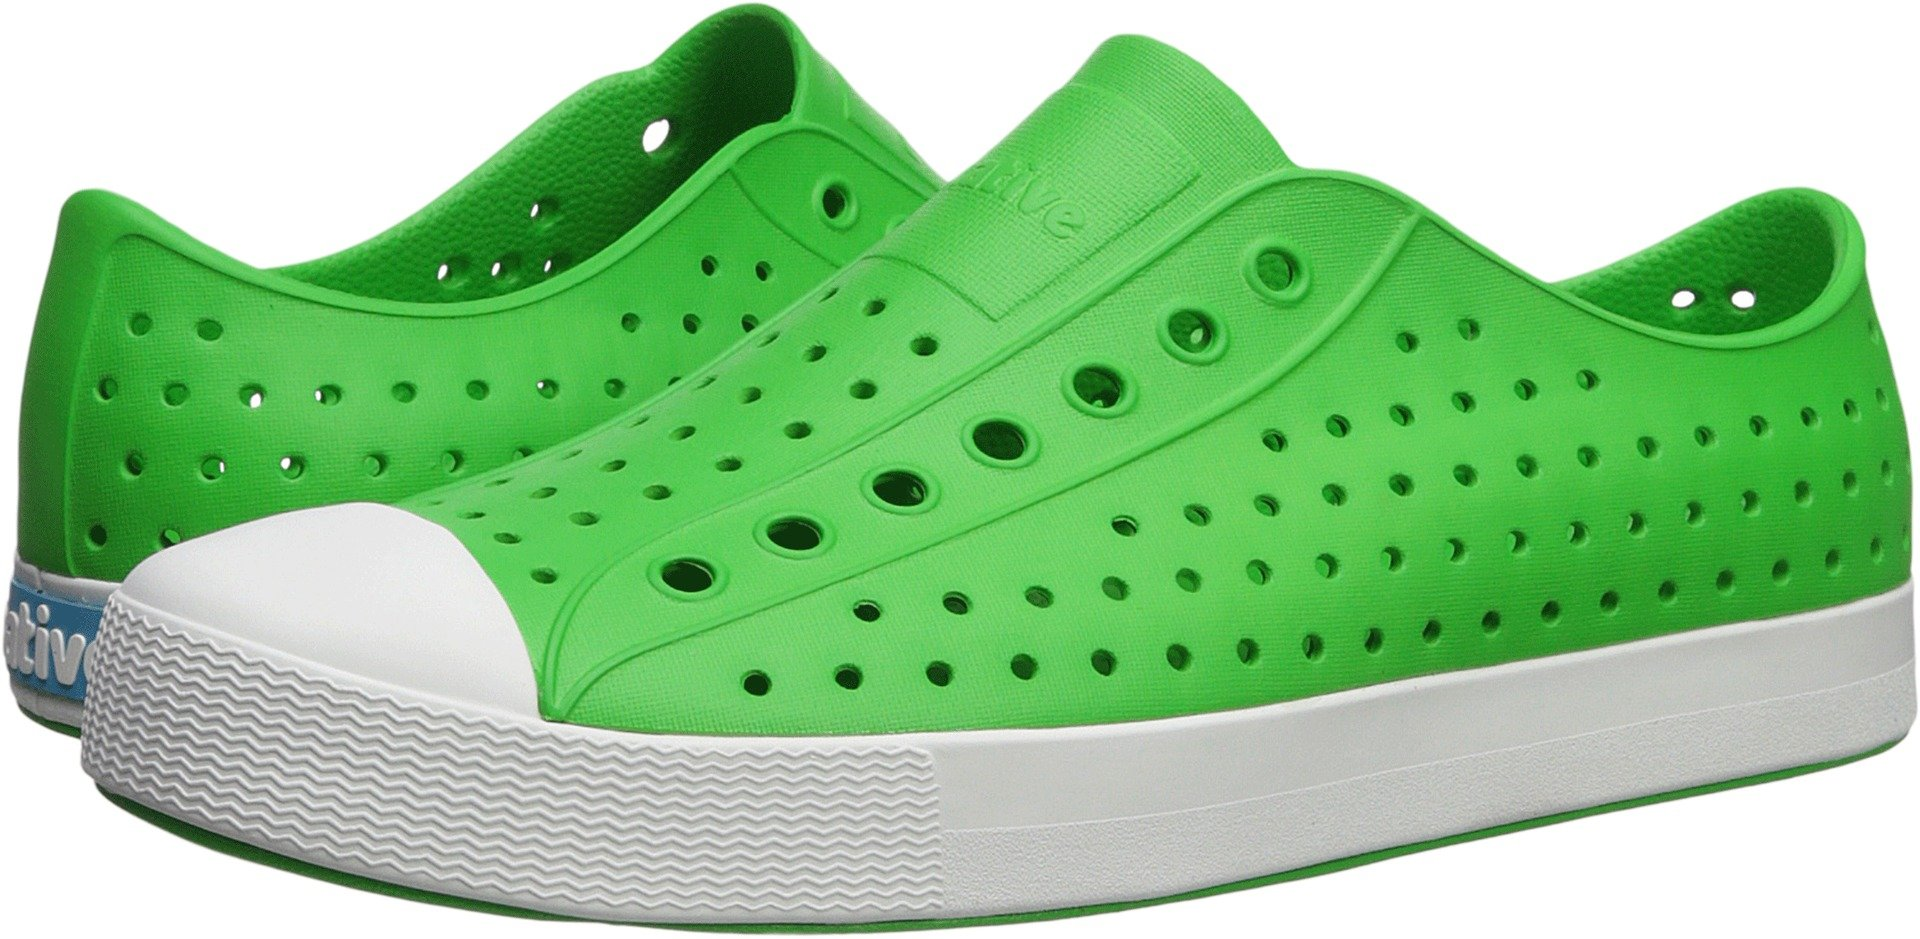 Native Shoes Jefferson Water Shoe Grasshopper Green/Shell White 9 Men's M US by Native Shoes (Image #1)